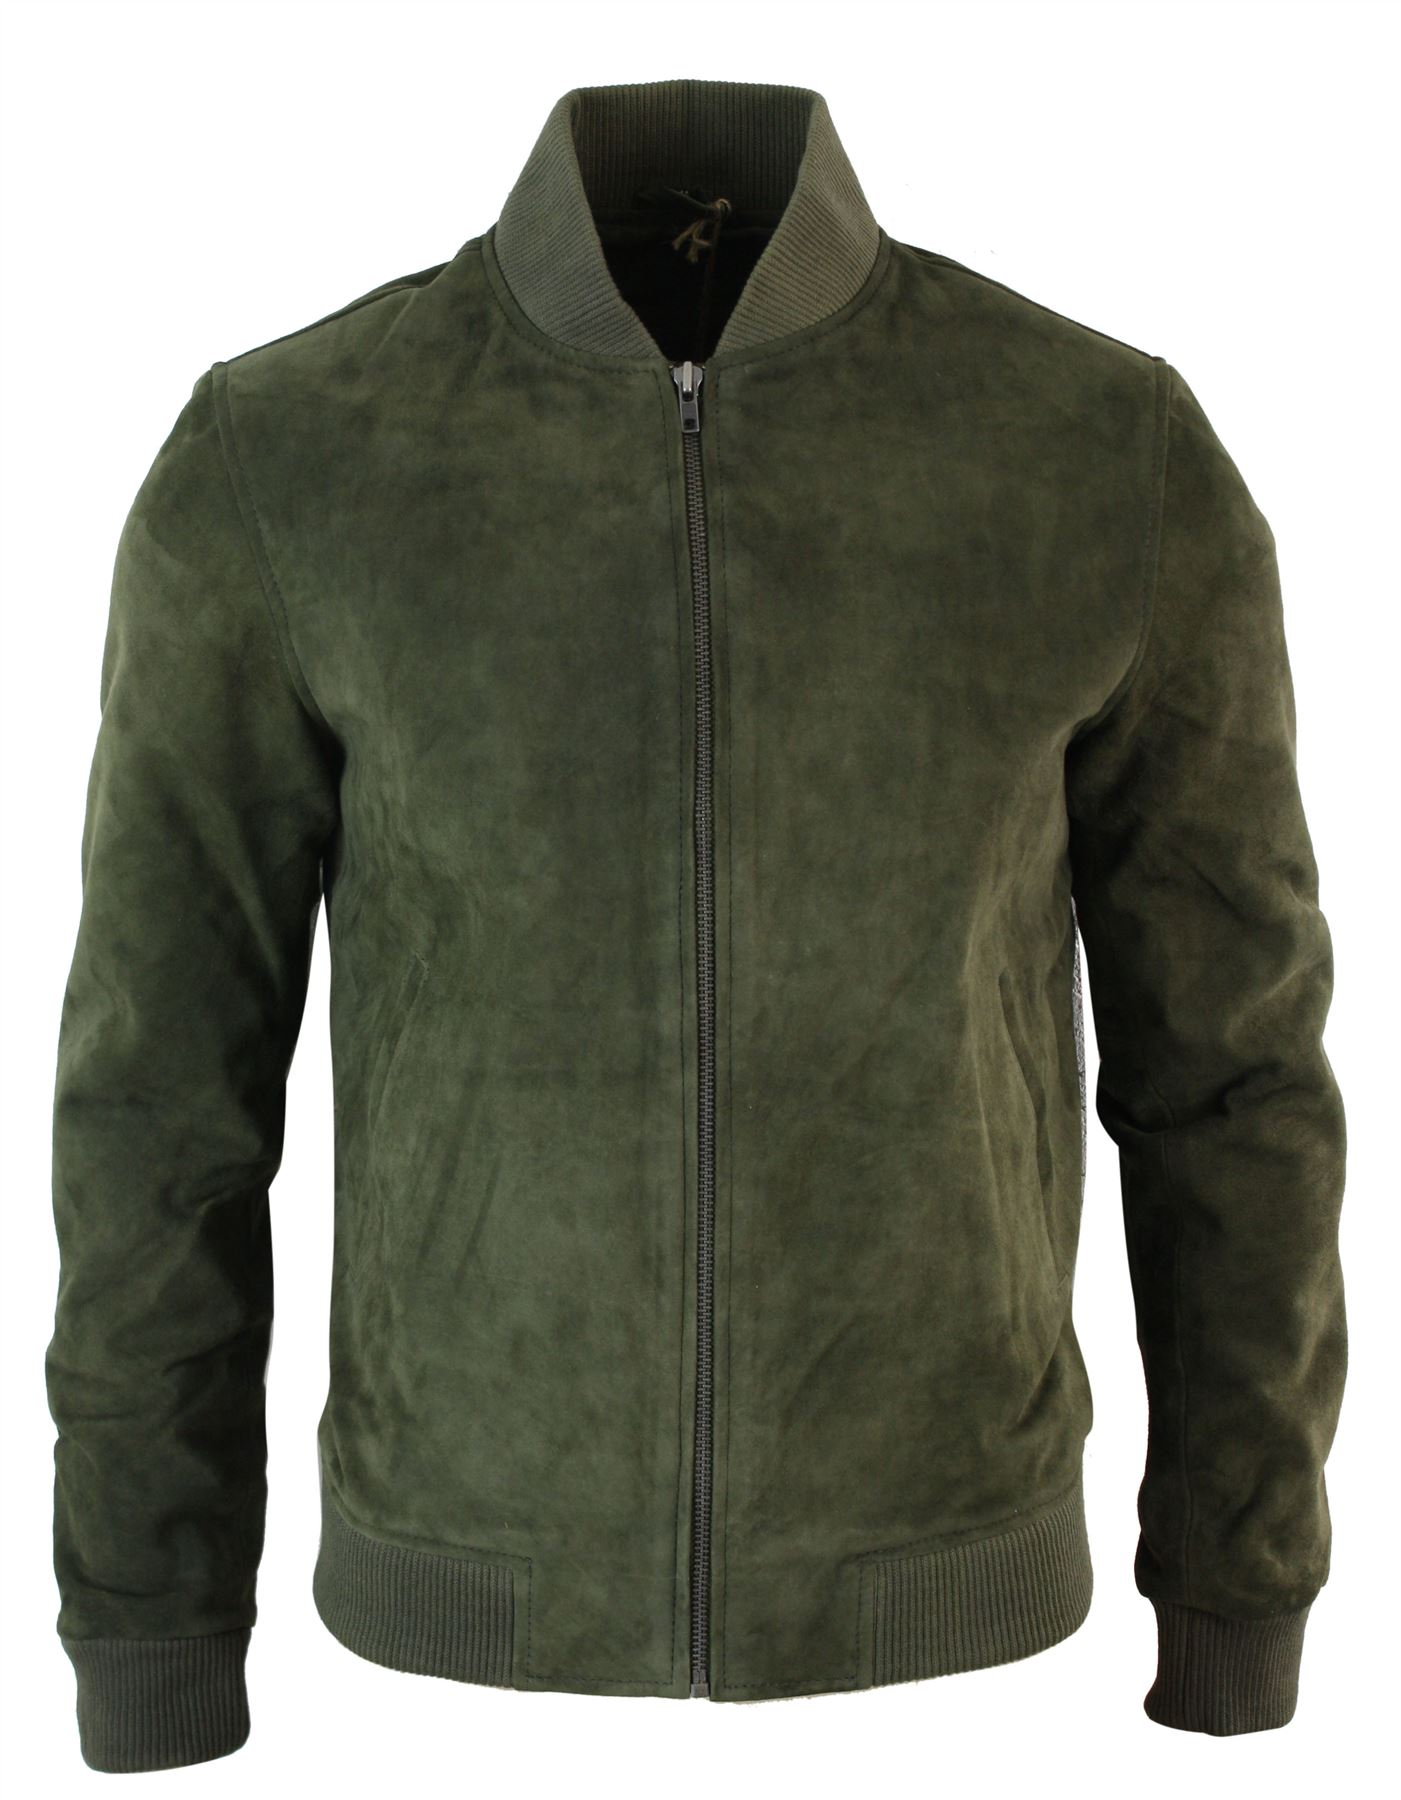 Classic mens leather bomber jackets